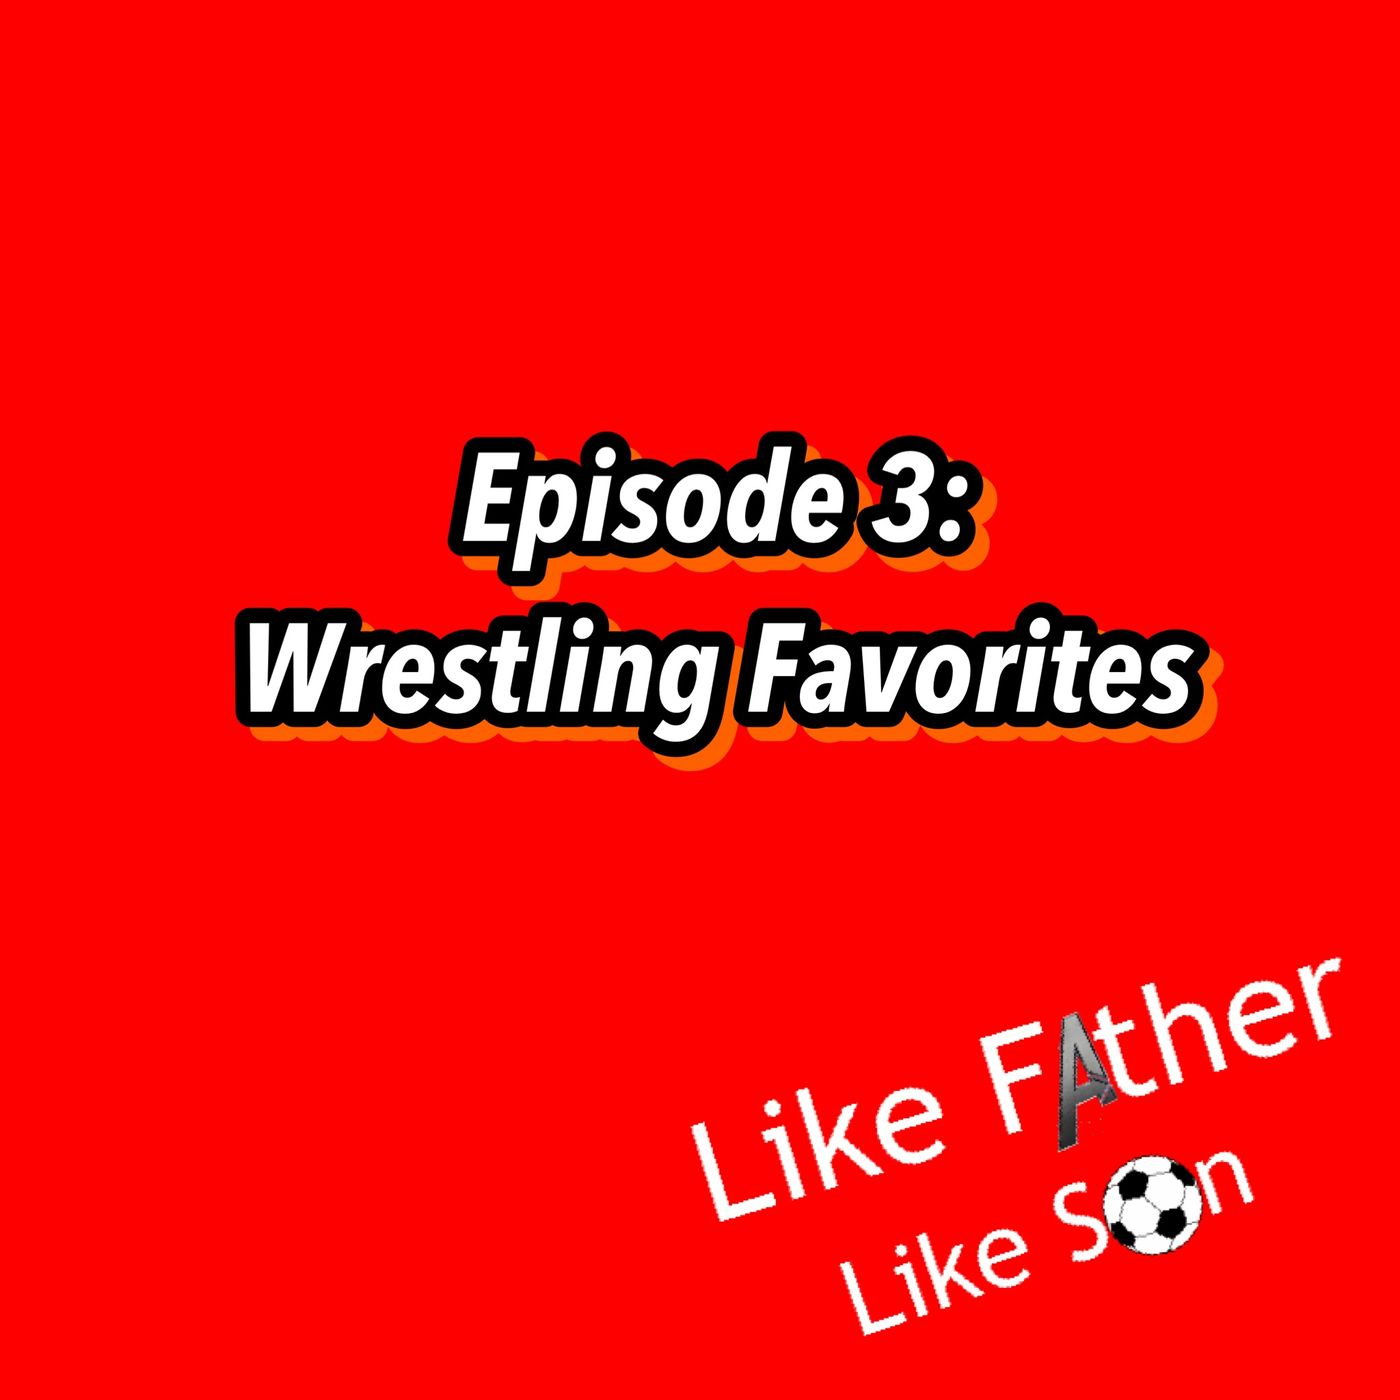 Like Father Like Son Episode 3: Wrestling Favorites